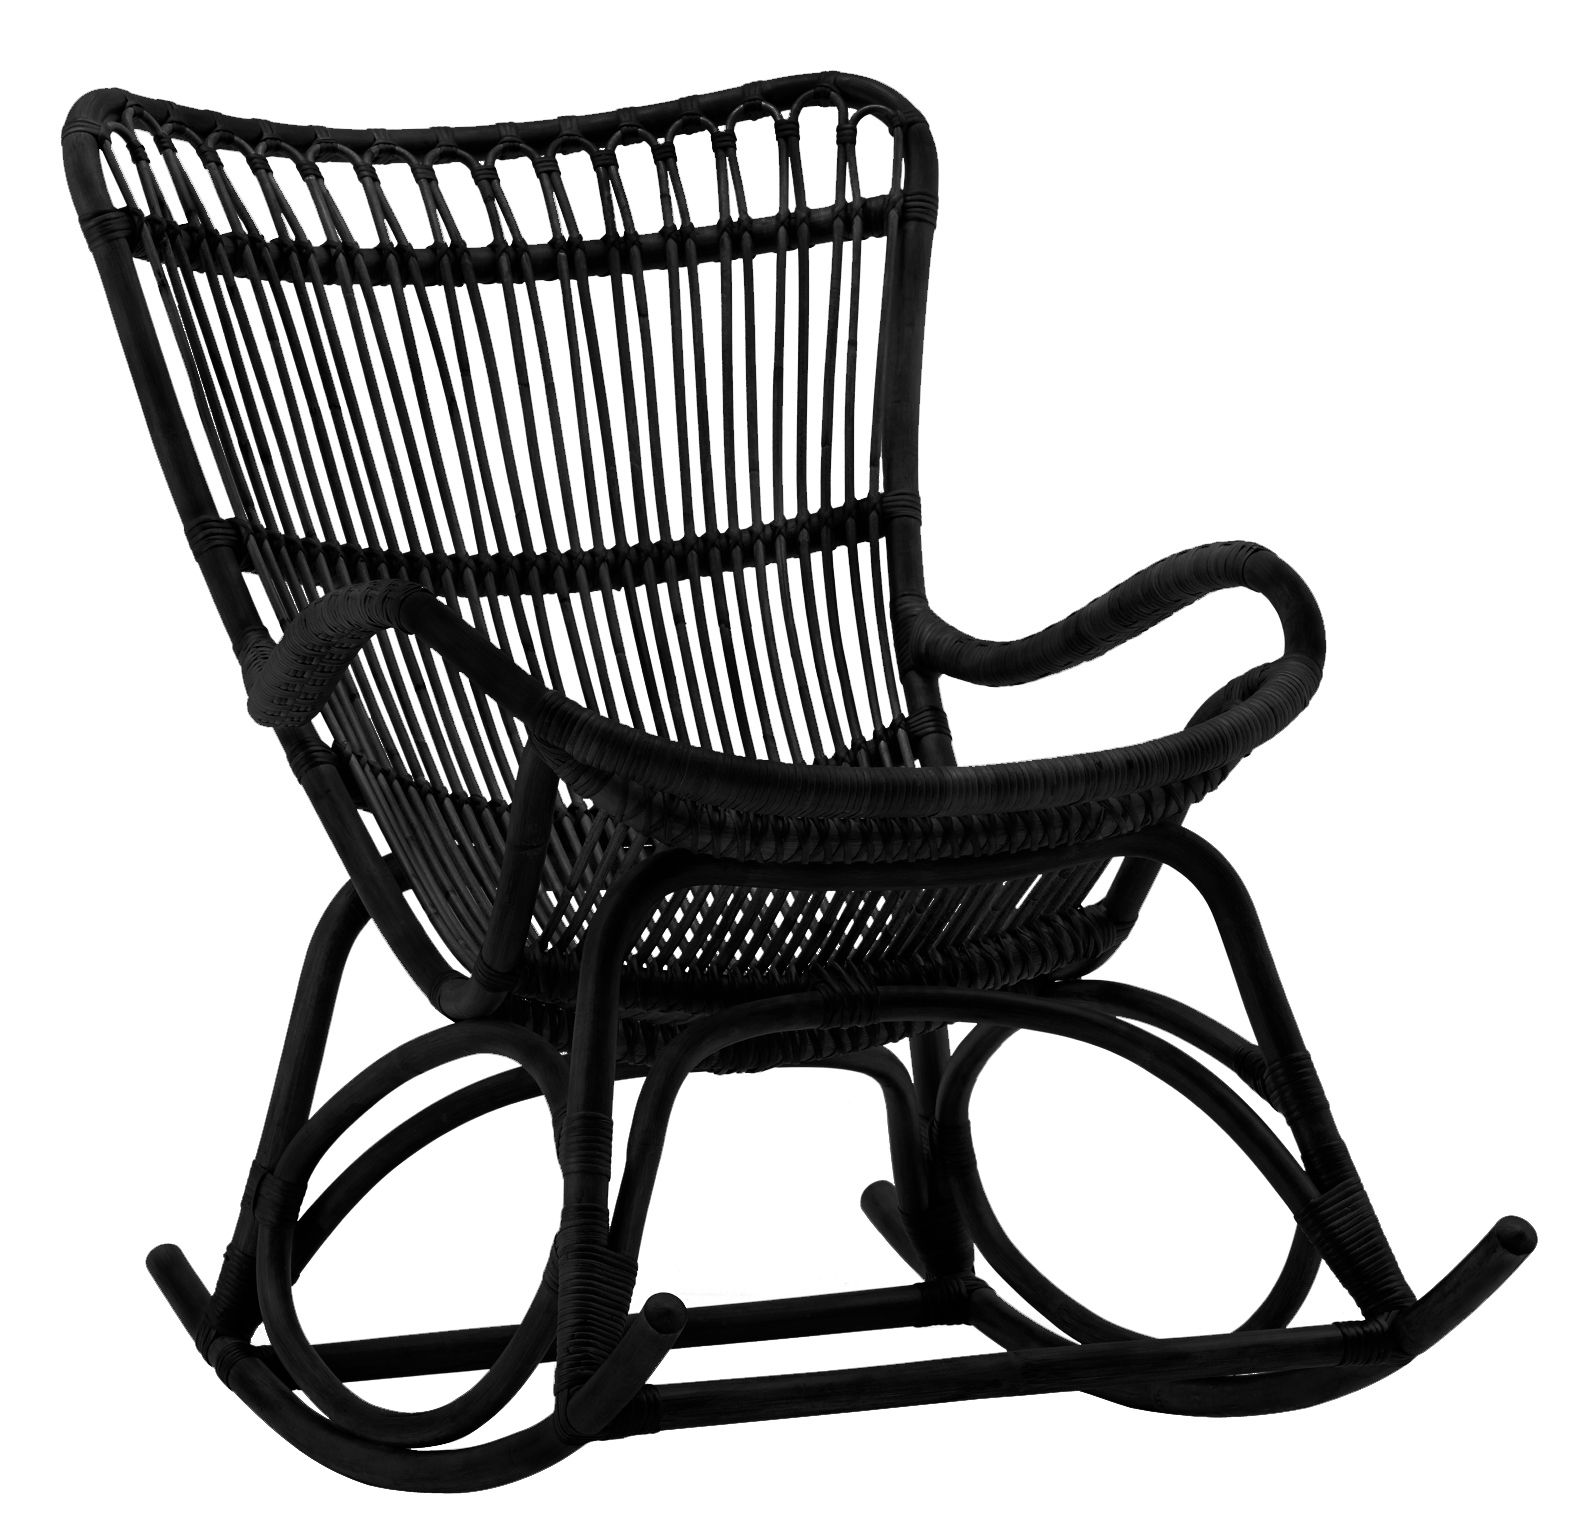 Furniture - Armchairs - Monet Rocking chair by Sika Design - Black - Rattan